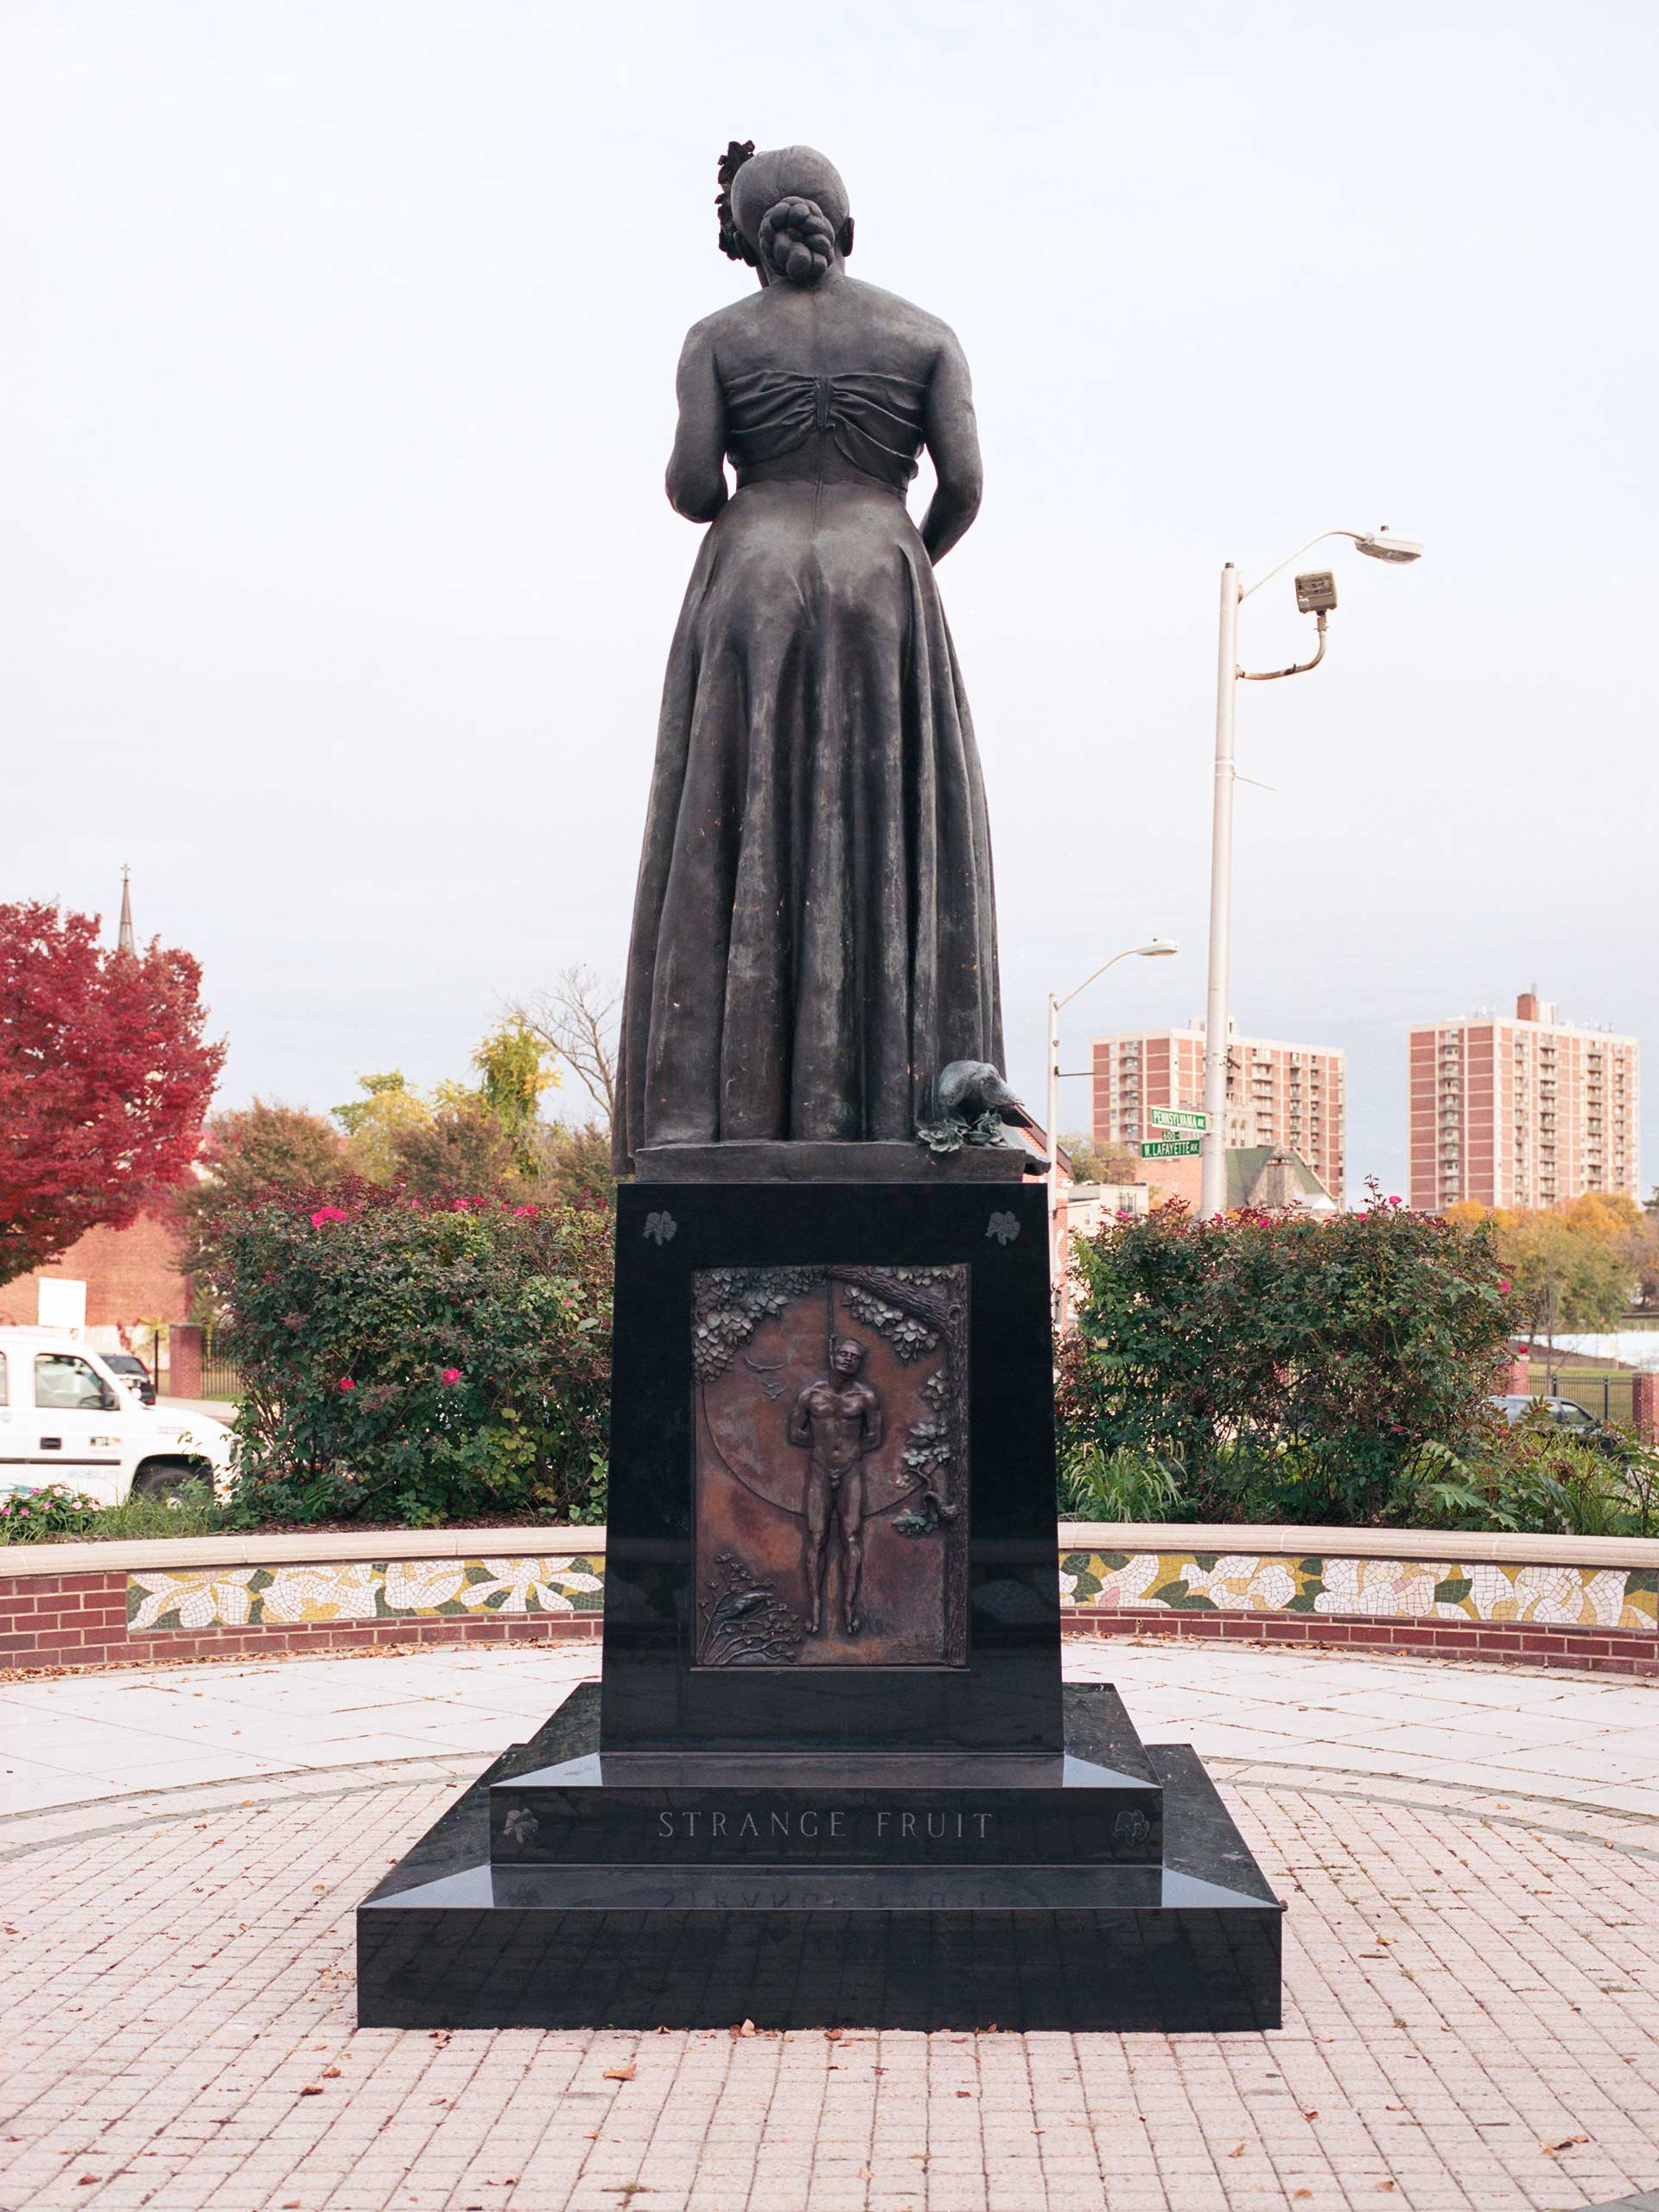 """A statue commemorating and depicting famed Baltimore musician Billie Holiday sits diagonally across the street from the original location of the Royal Theatre. The statue was first erected in 1985 but without its intended base, which was censored by the city at the time. The statue was rededicated in 2009 with its original base. The base features a lynching depiction, a reference to Holiday's song """"Strange Fruit"""", and a crow ripping apart a gardenia, Holiday's signature flower, to symbolize the Jim Crow era."""